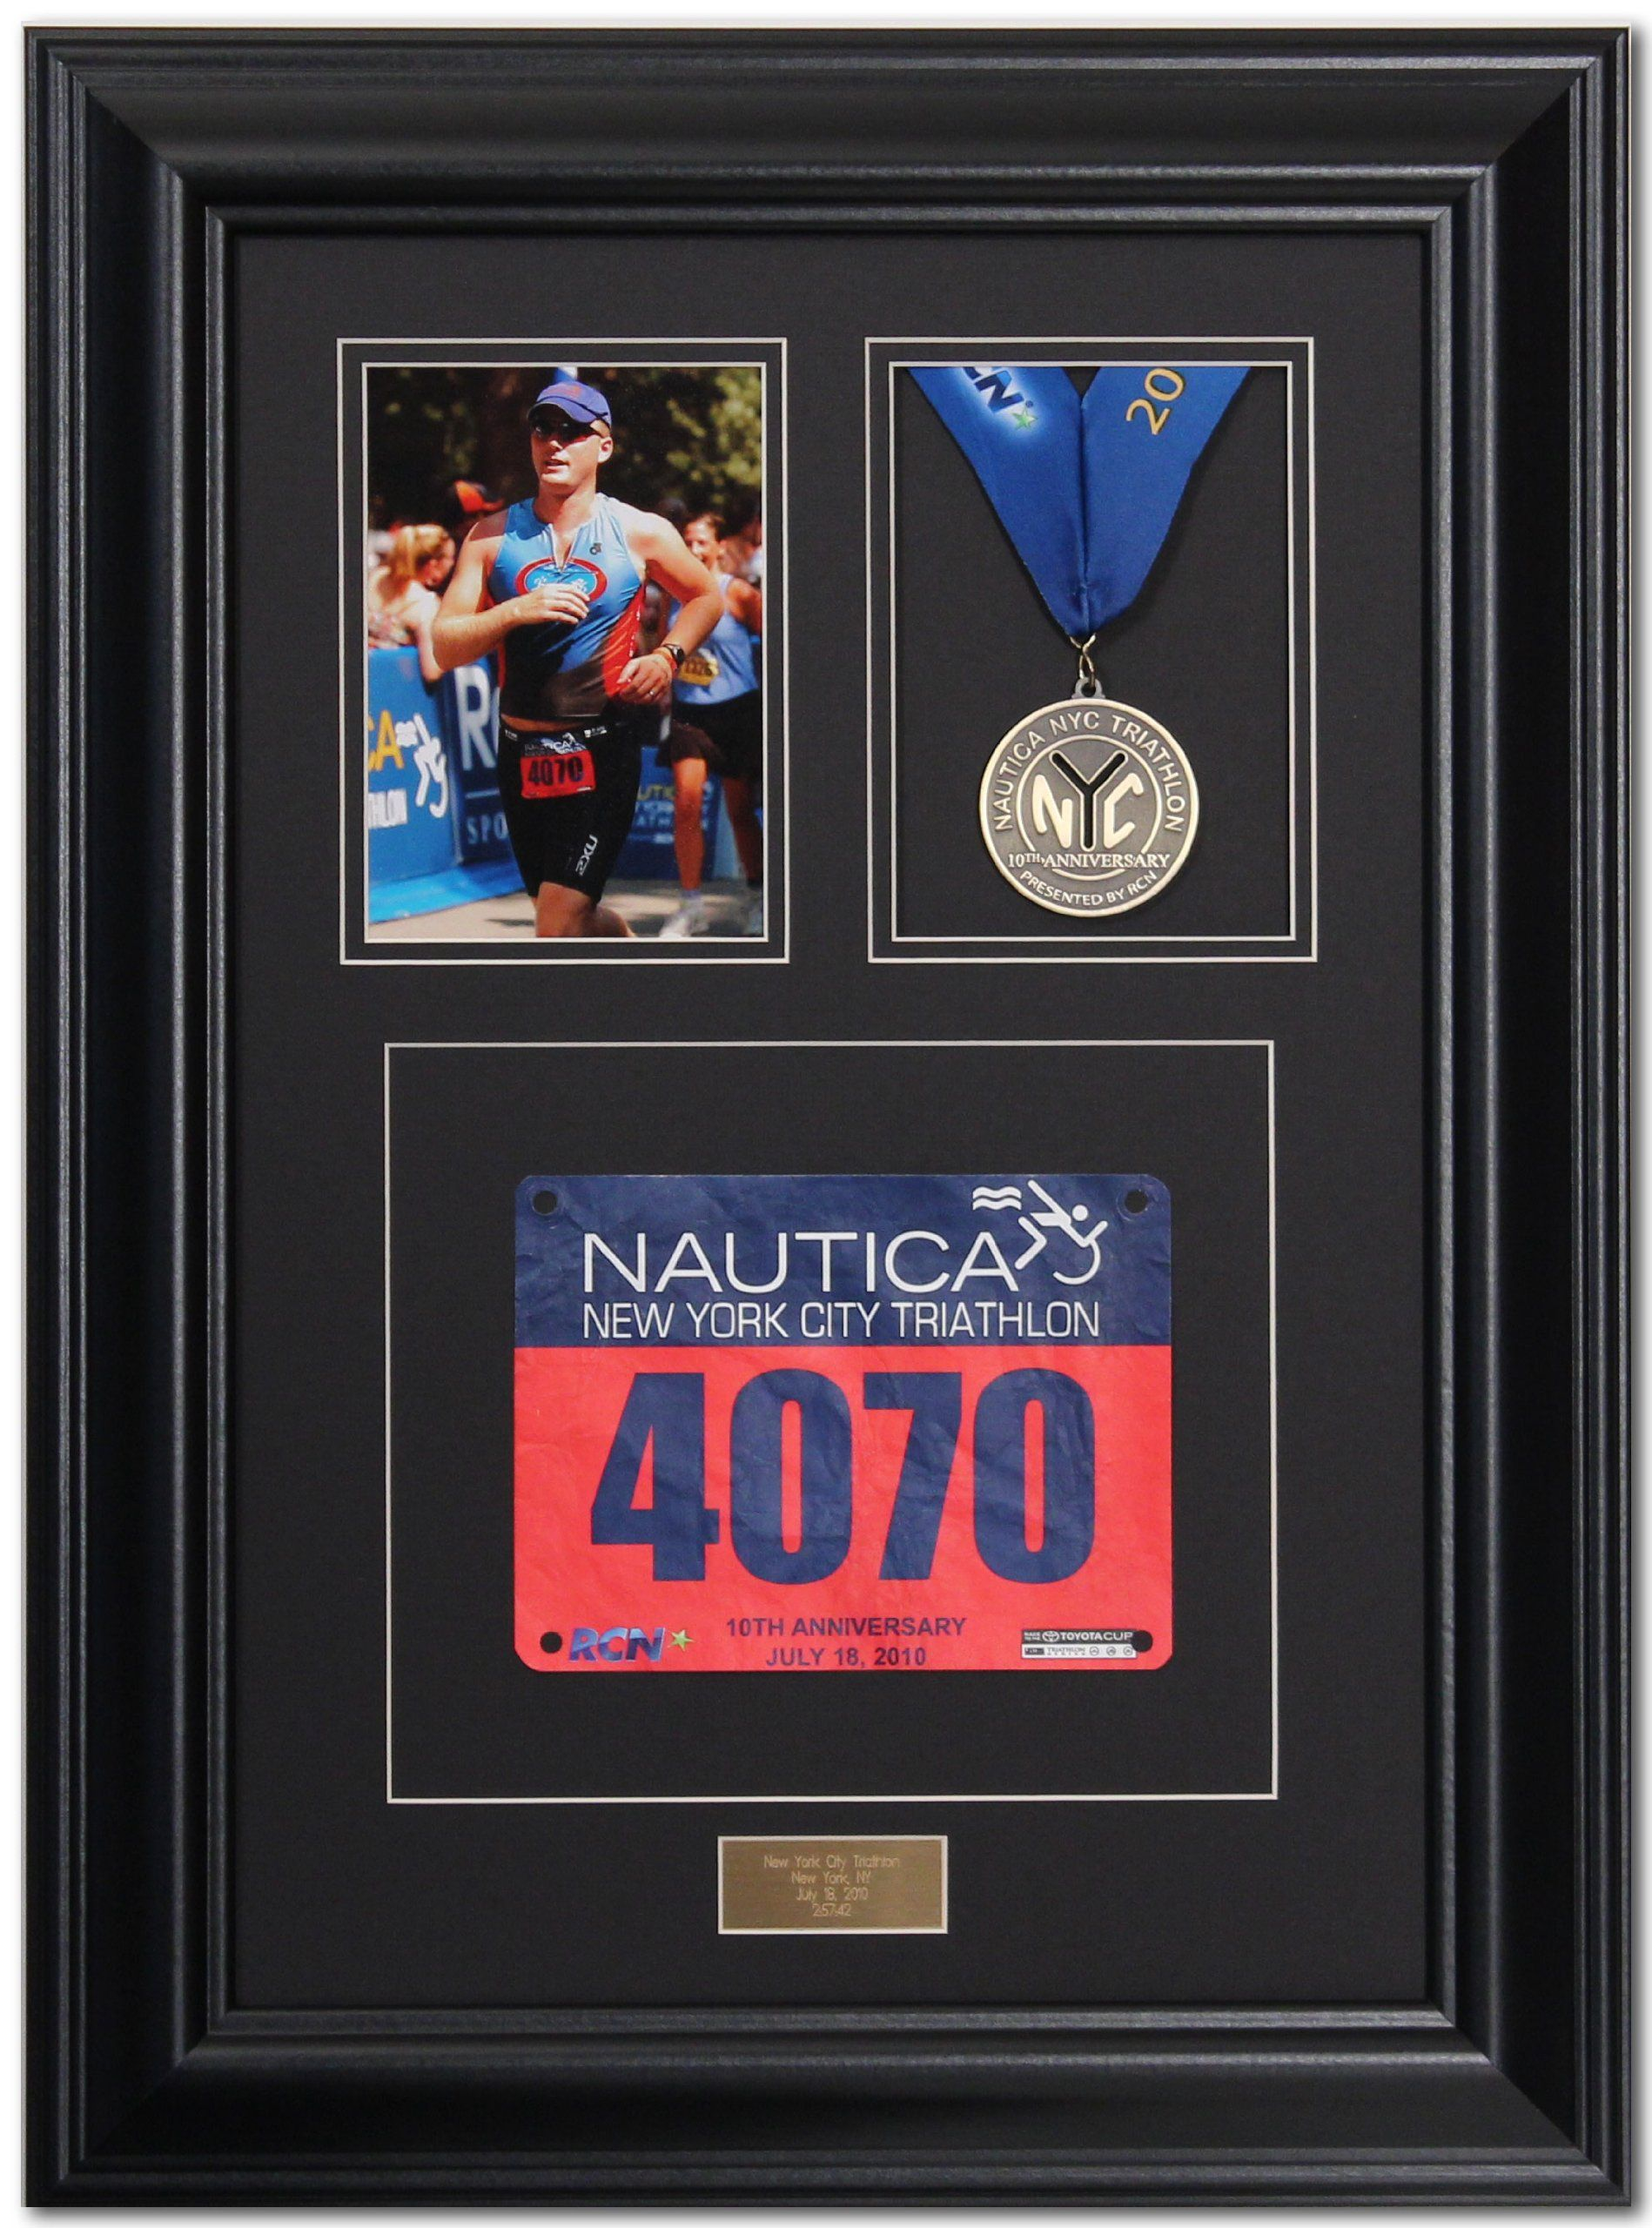 Triumph Marathon and Triathlon Photo, Finishing Medal and Race Bib ...